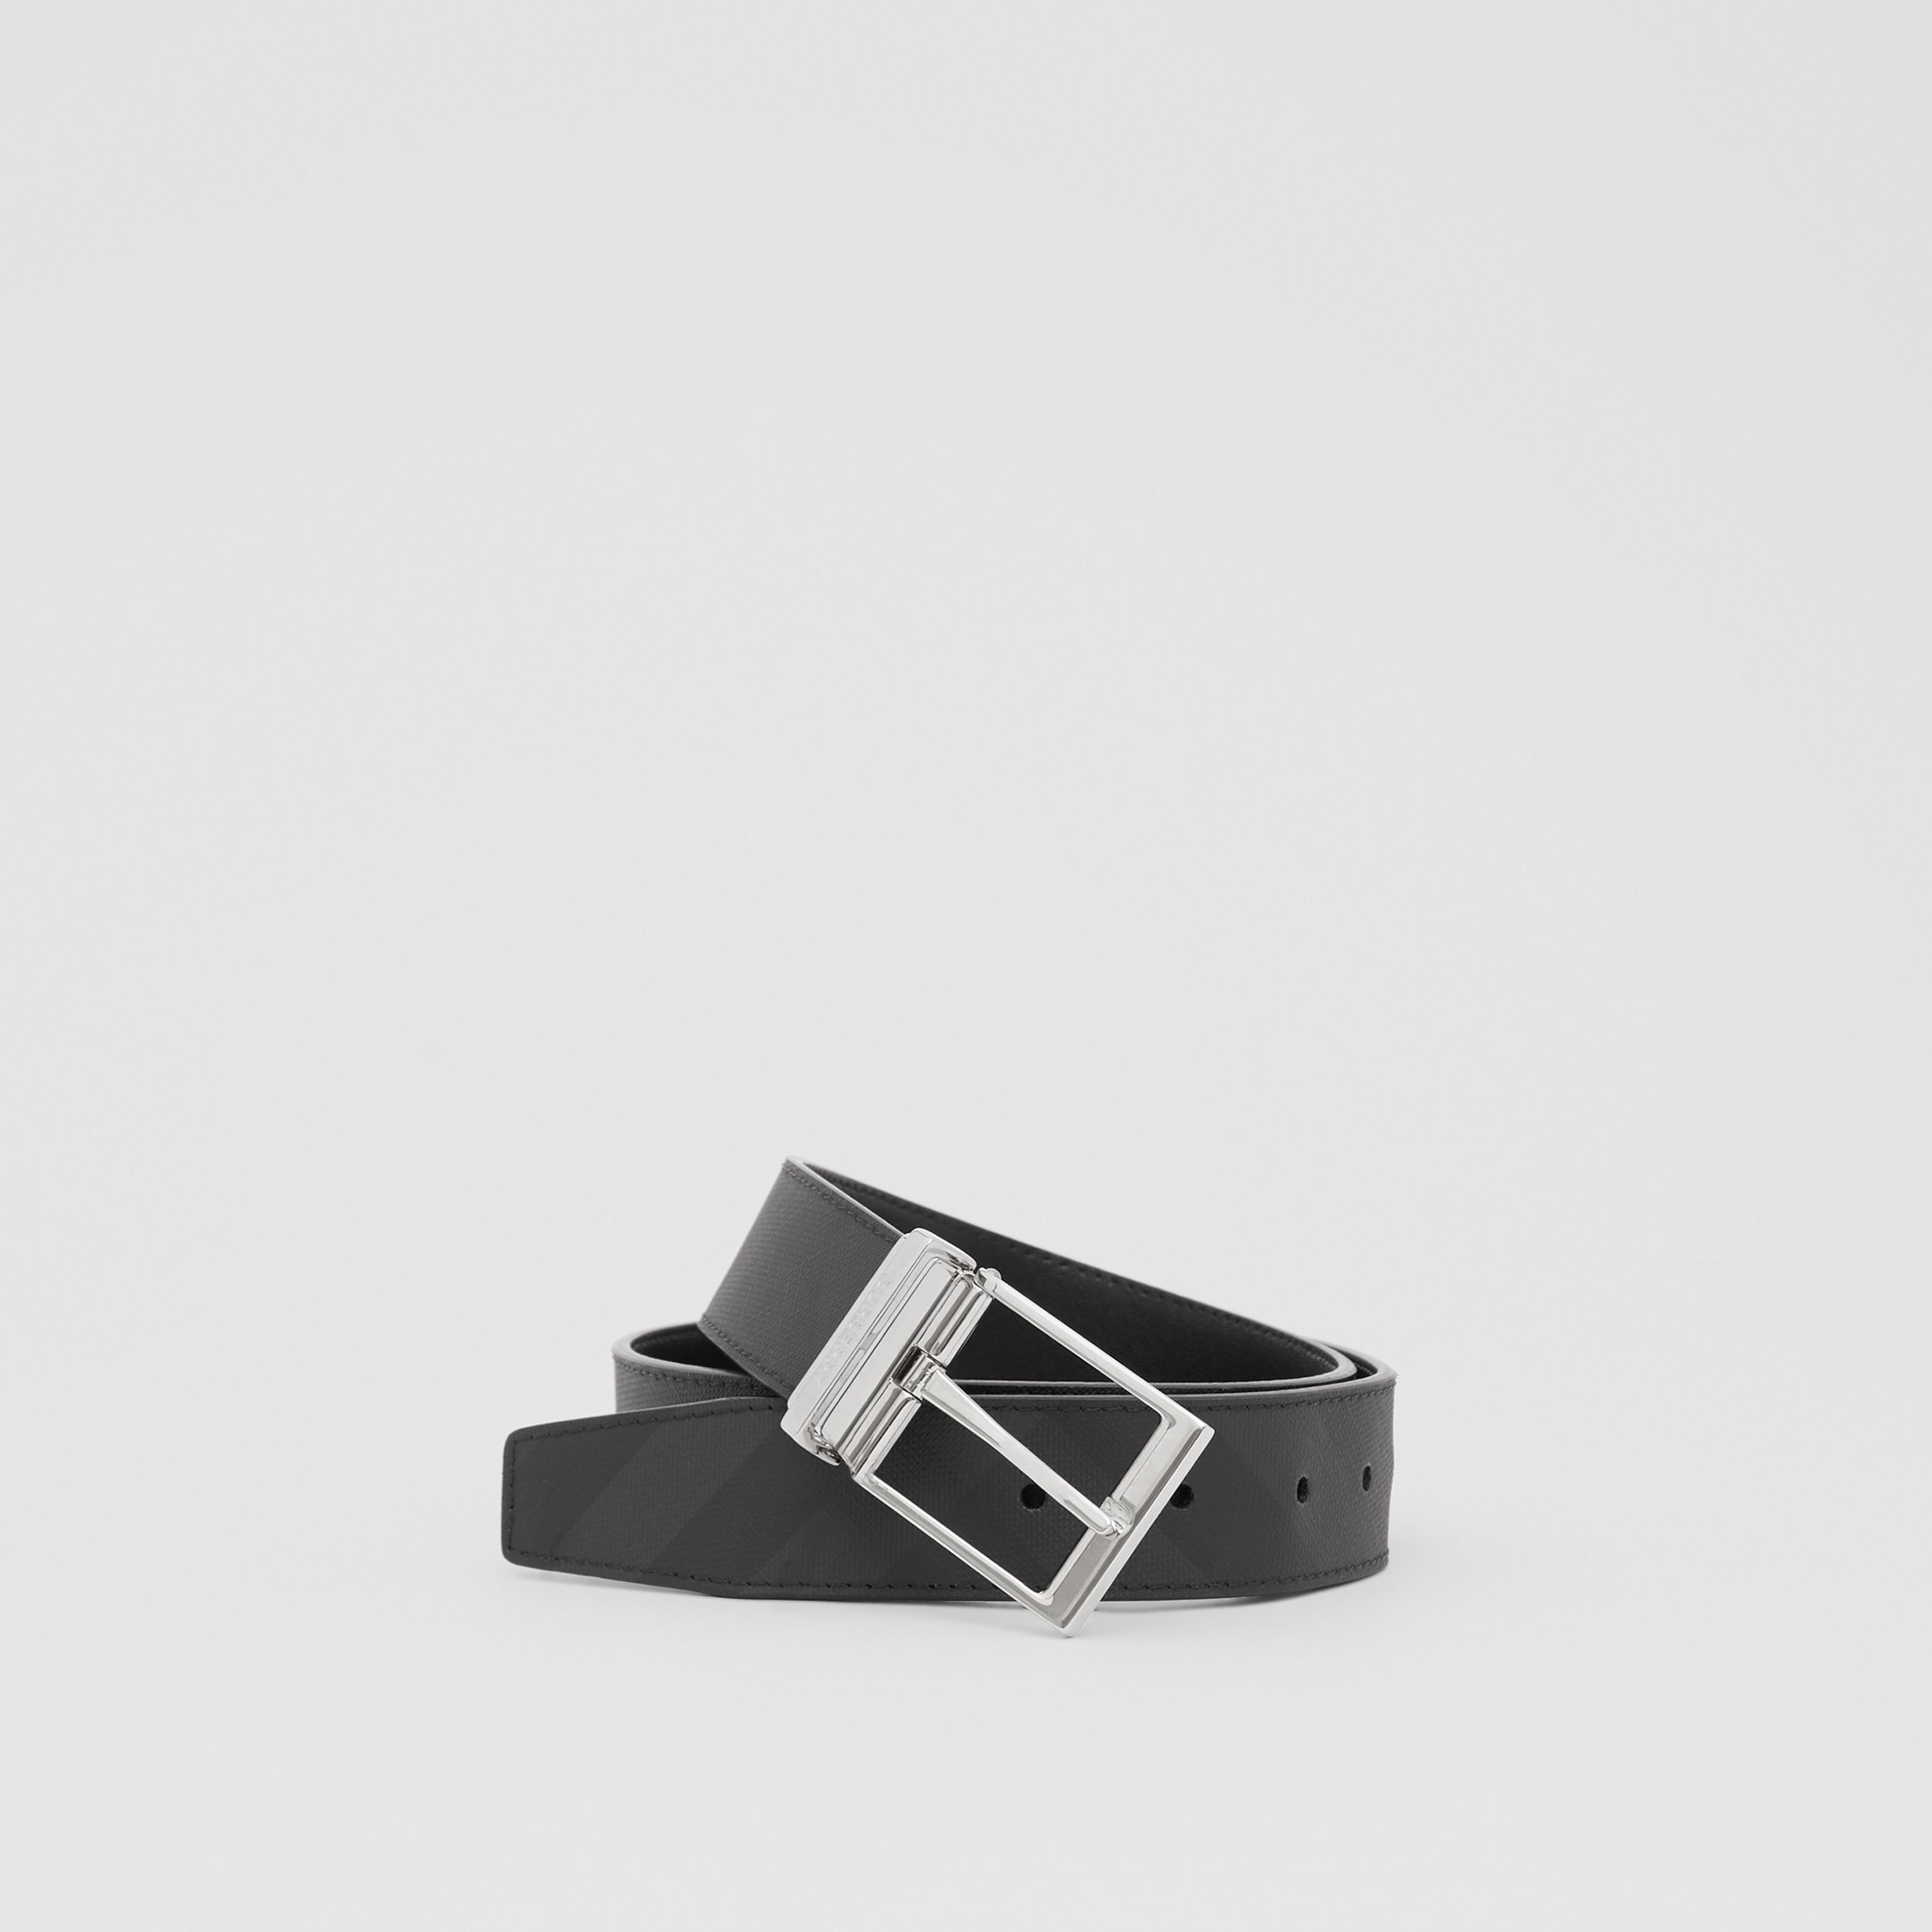 Reversible London Check and Leather Belt in Dark Charcoal/black - Men | Burberry - 1